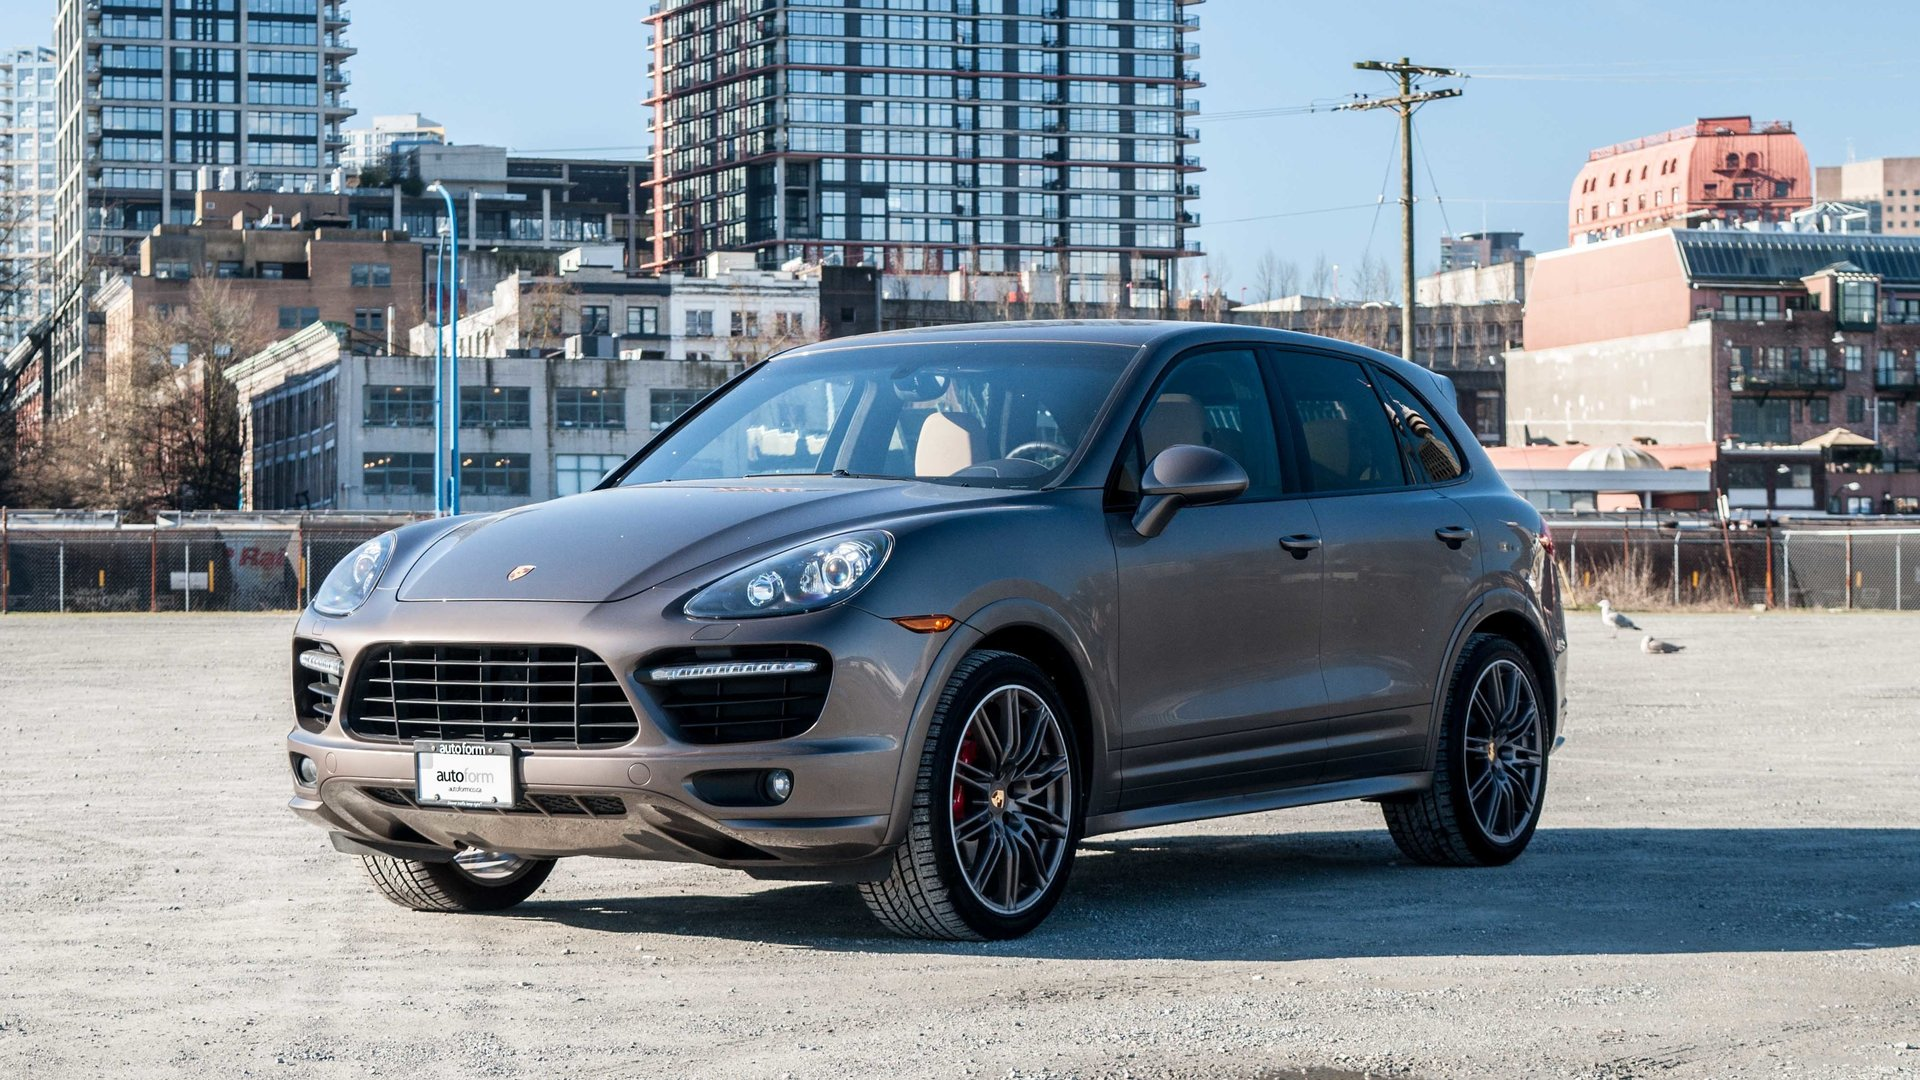 2014 porsche cayenne gts for sale 83570 mcg. Black Bedroom Furniture Sets. Home Design Ideas